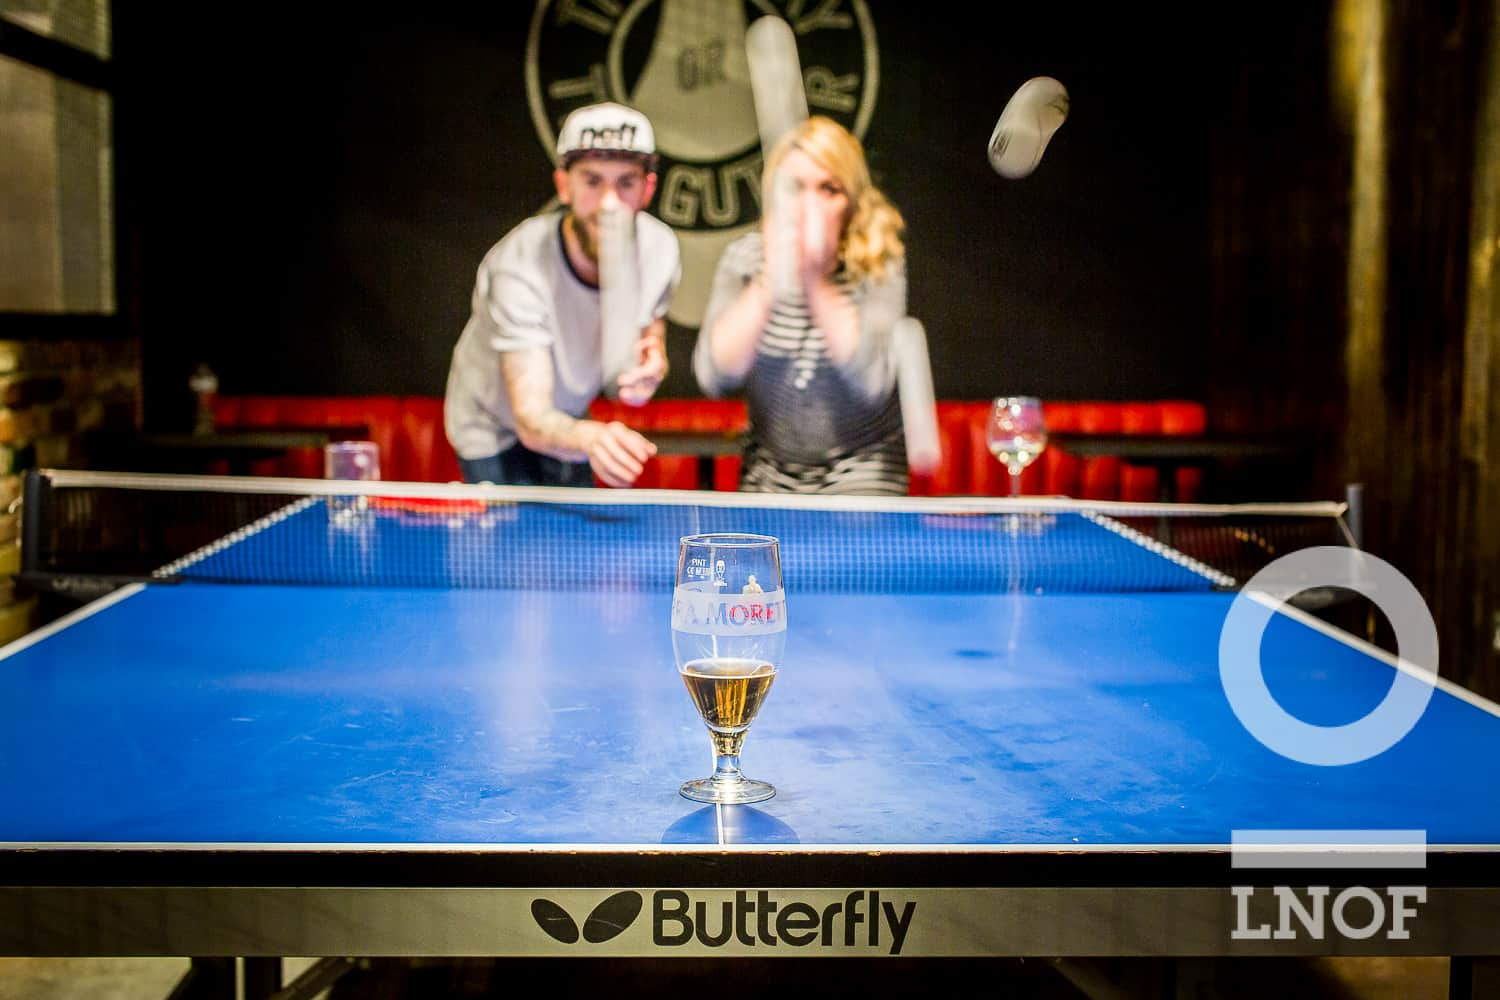 A boy and a girl bouncing ping pong balls on a ping pong table, aiming for a beer glass